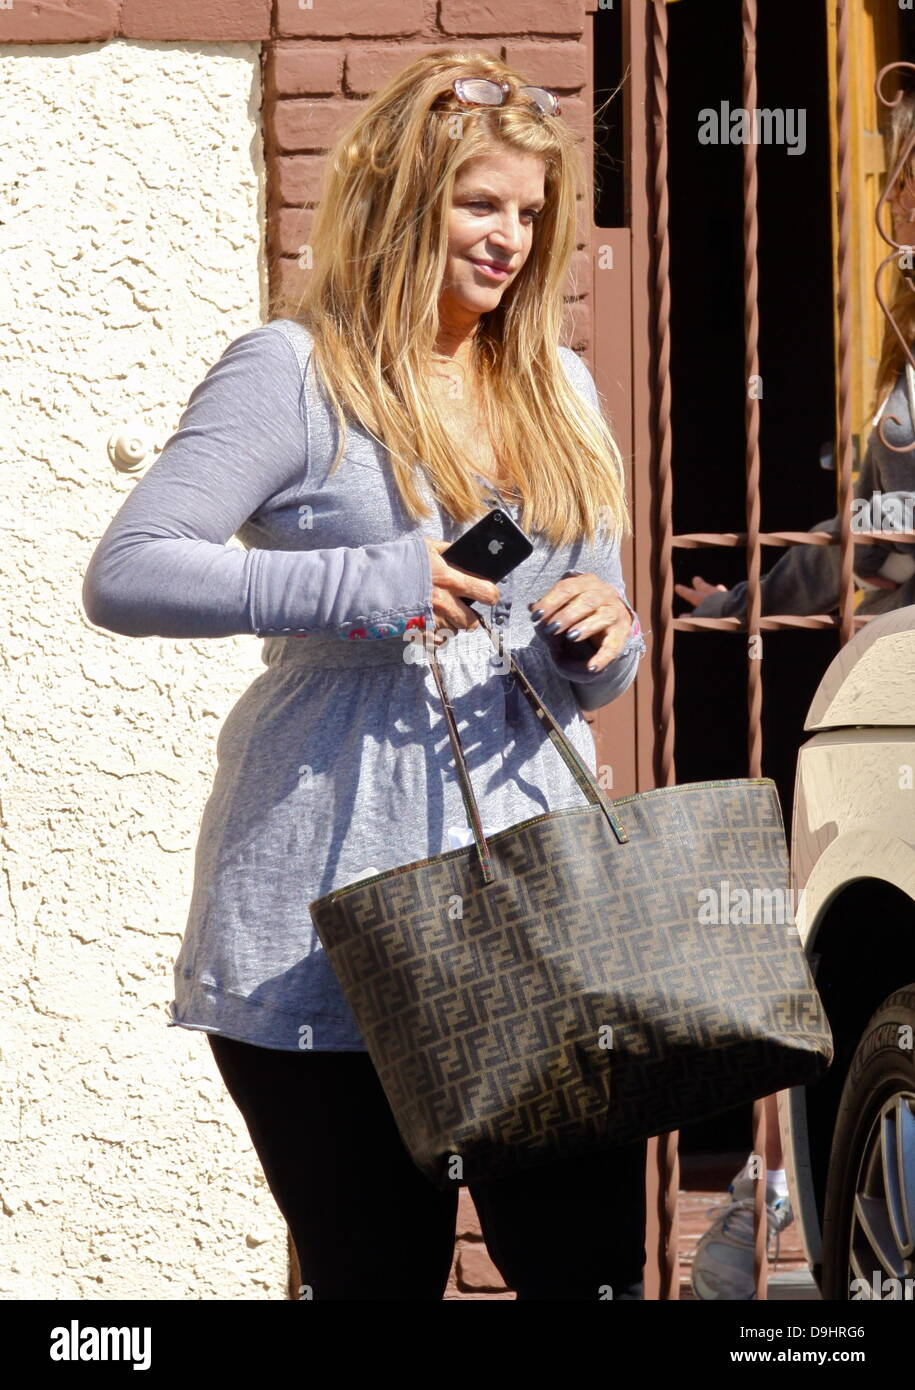 """Kirstie Alley  arrives at a dance studio to rehearse for """"Dancing With The Stars"""" Los Angeles, California - 22.03.11 Stock Photo"""